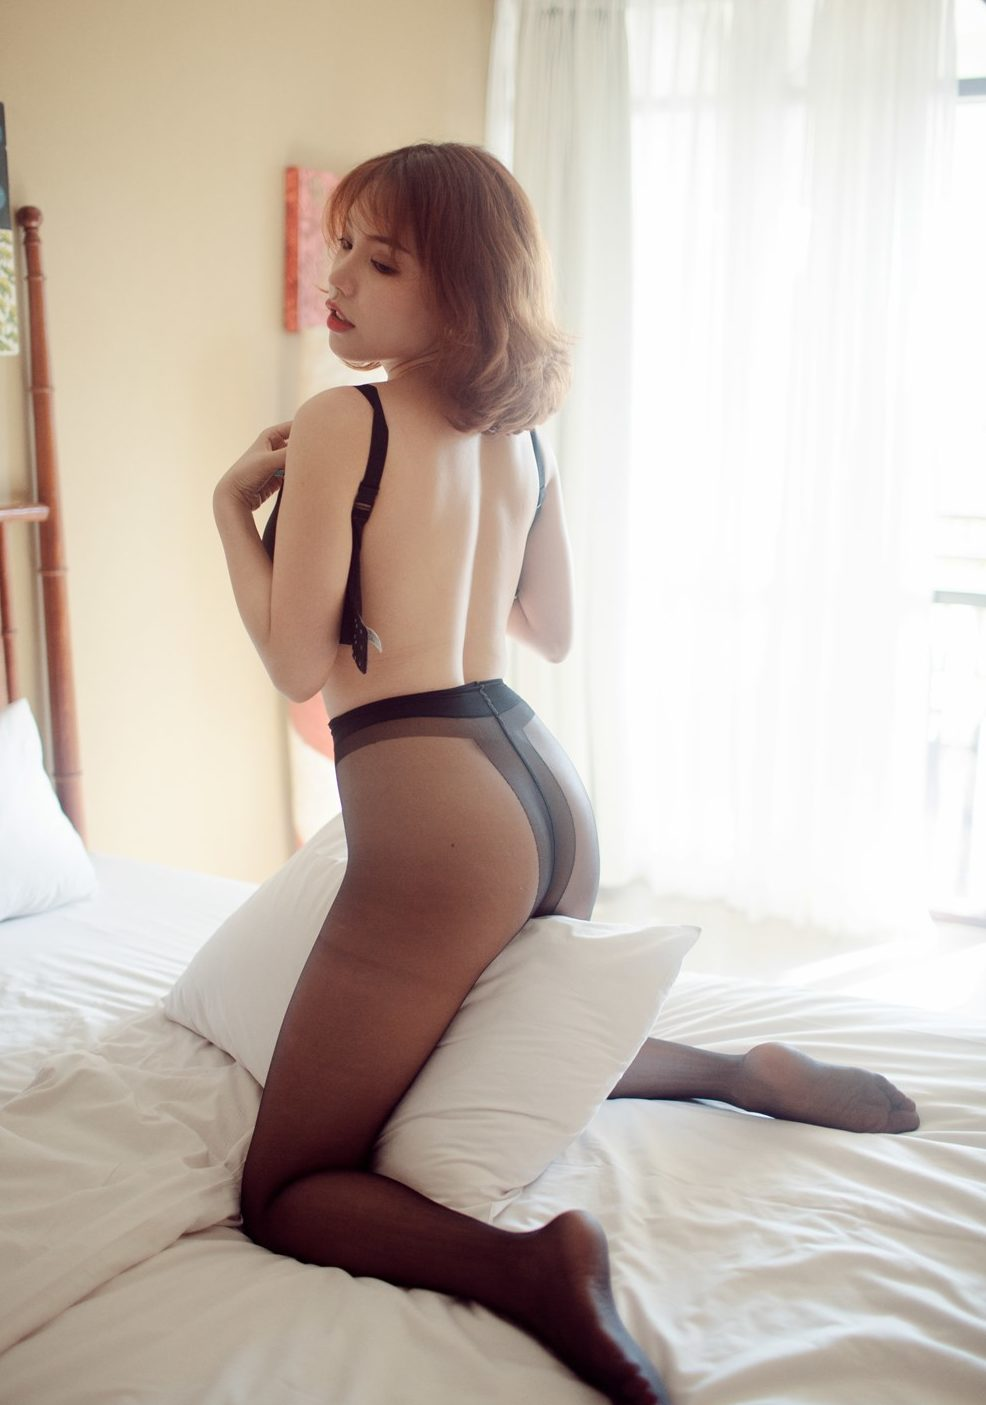 huang le ran hot asian girl super sexy naked nudes